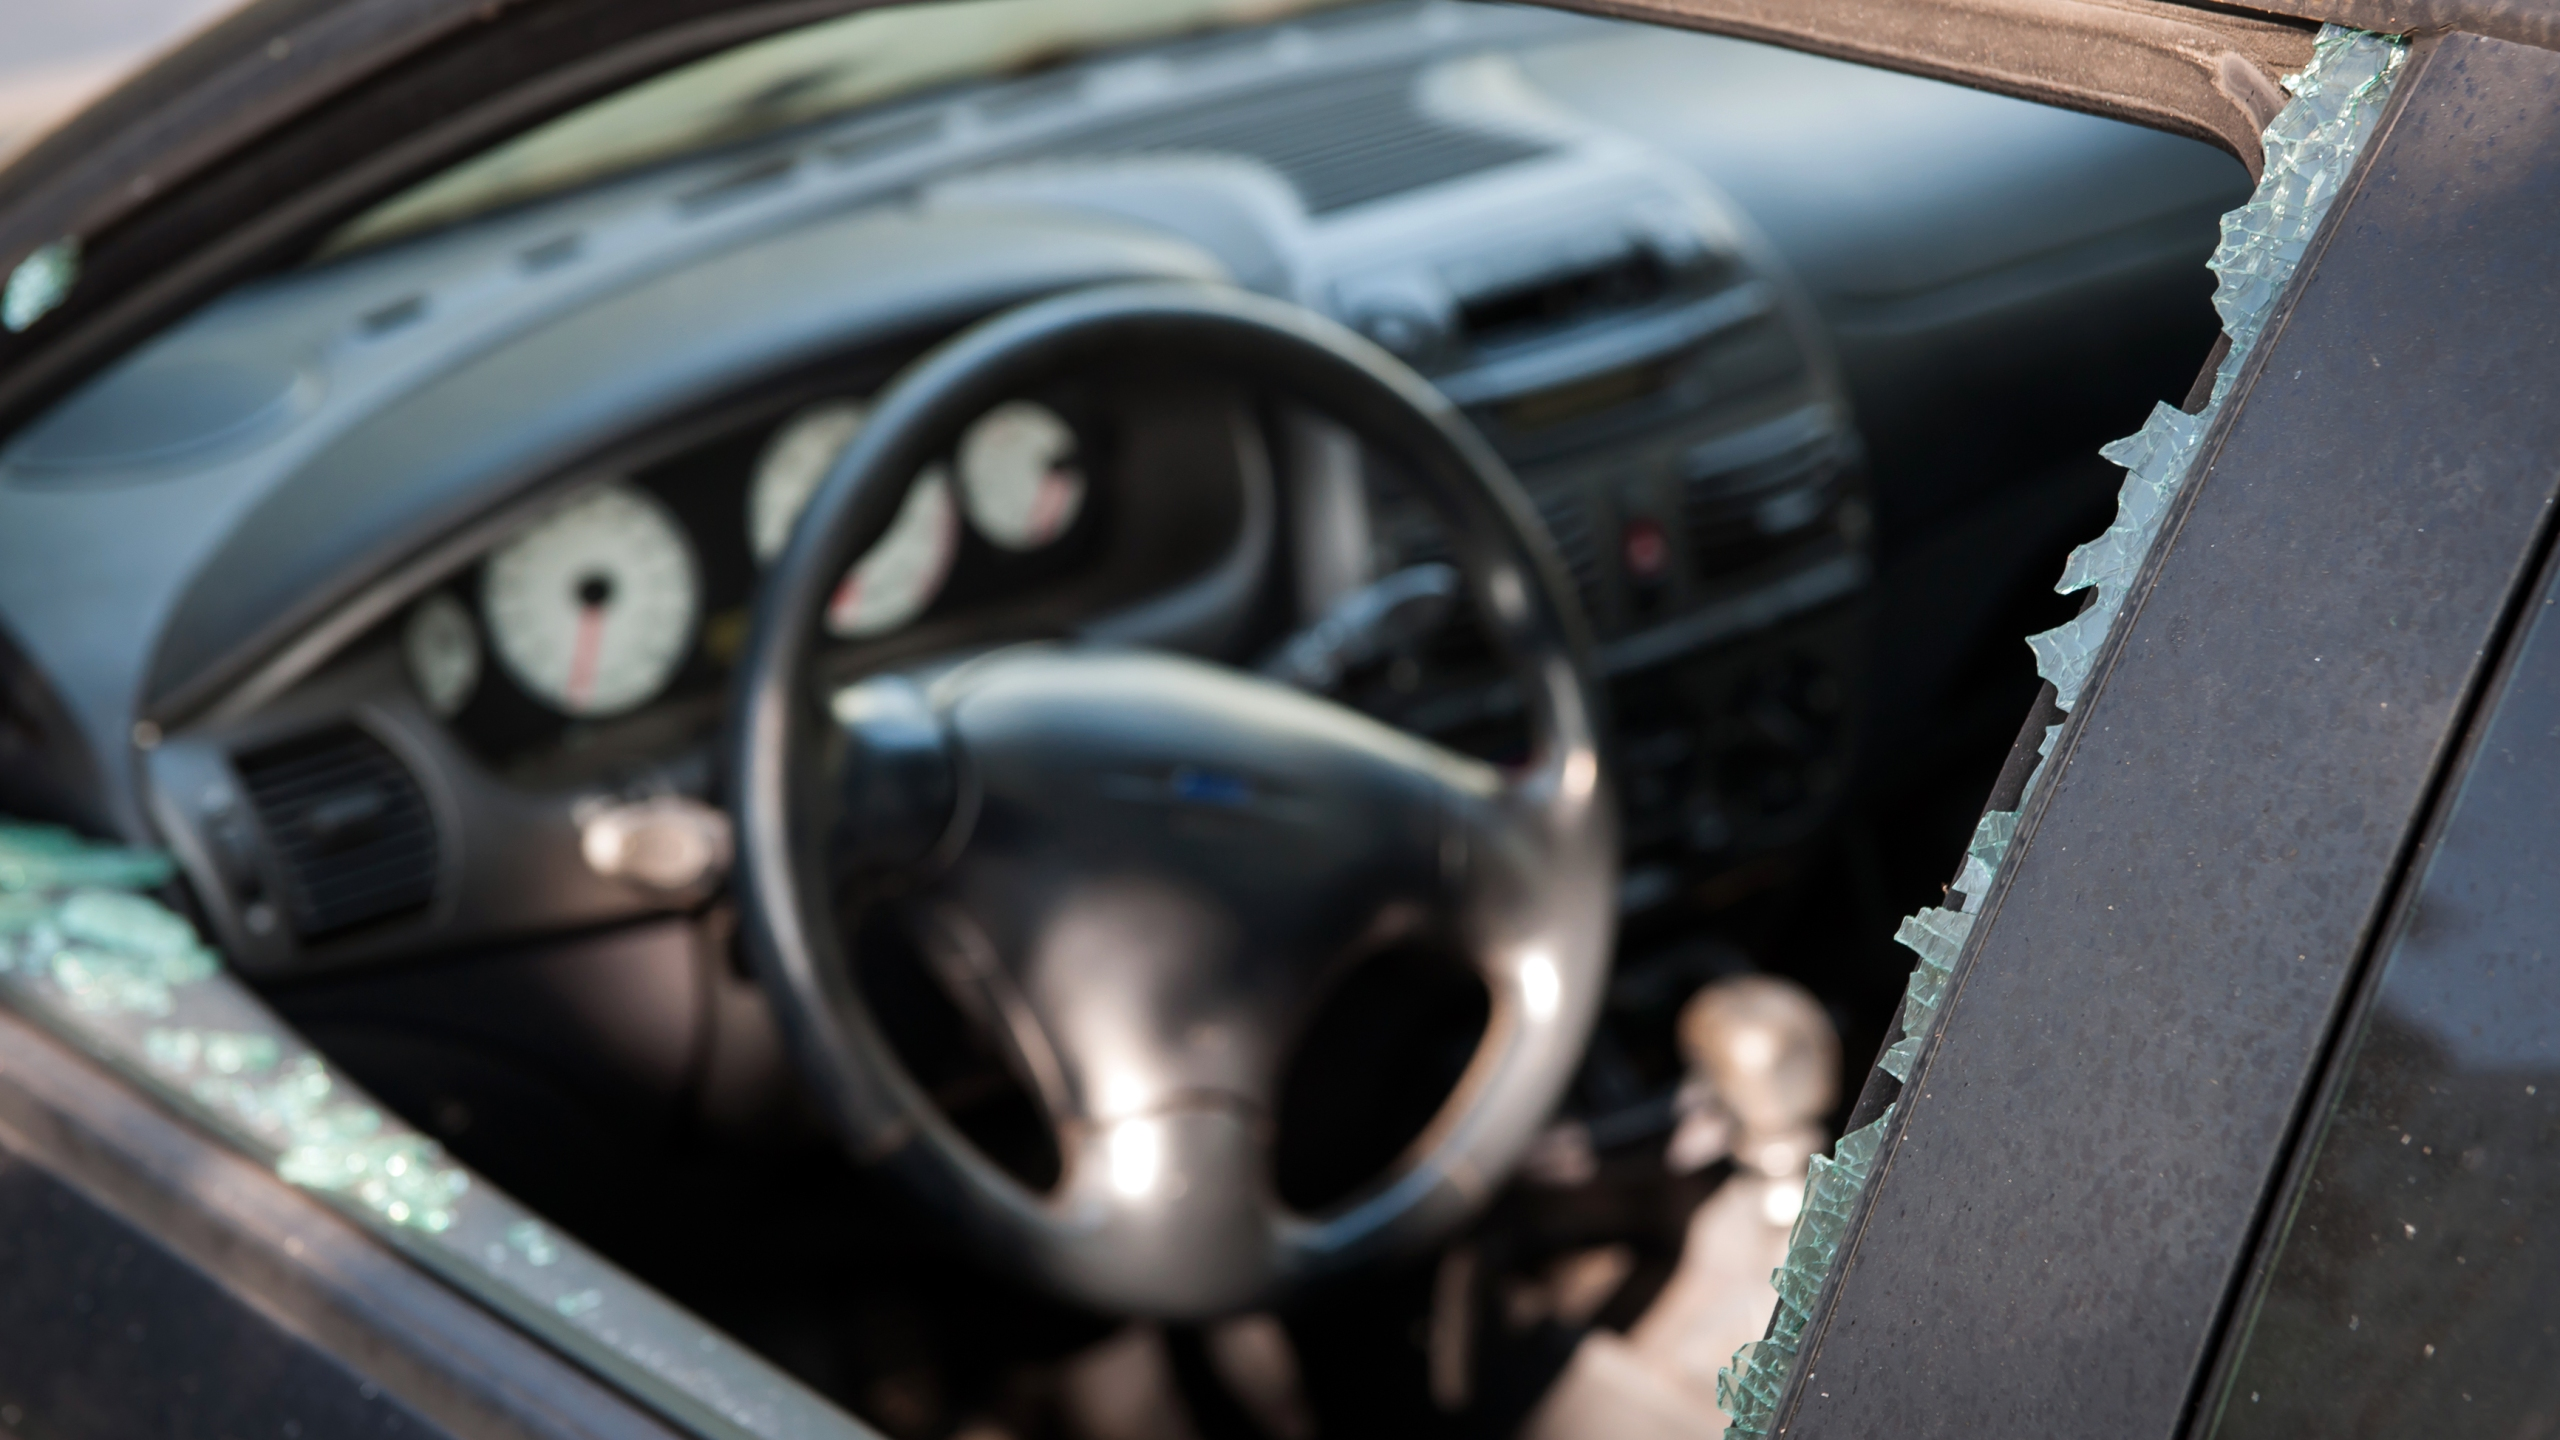 A broken car window is seen in a file photo. (iStock / Getty Images Plus)